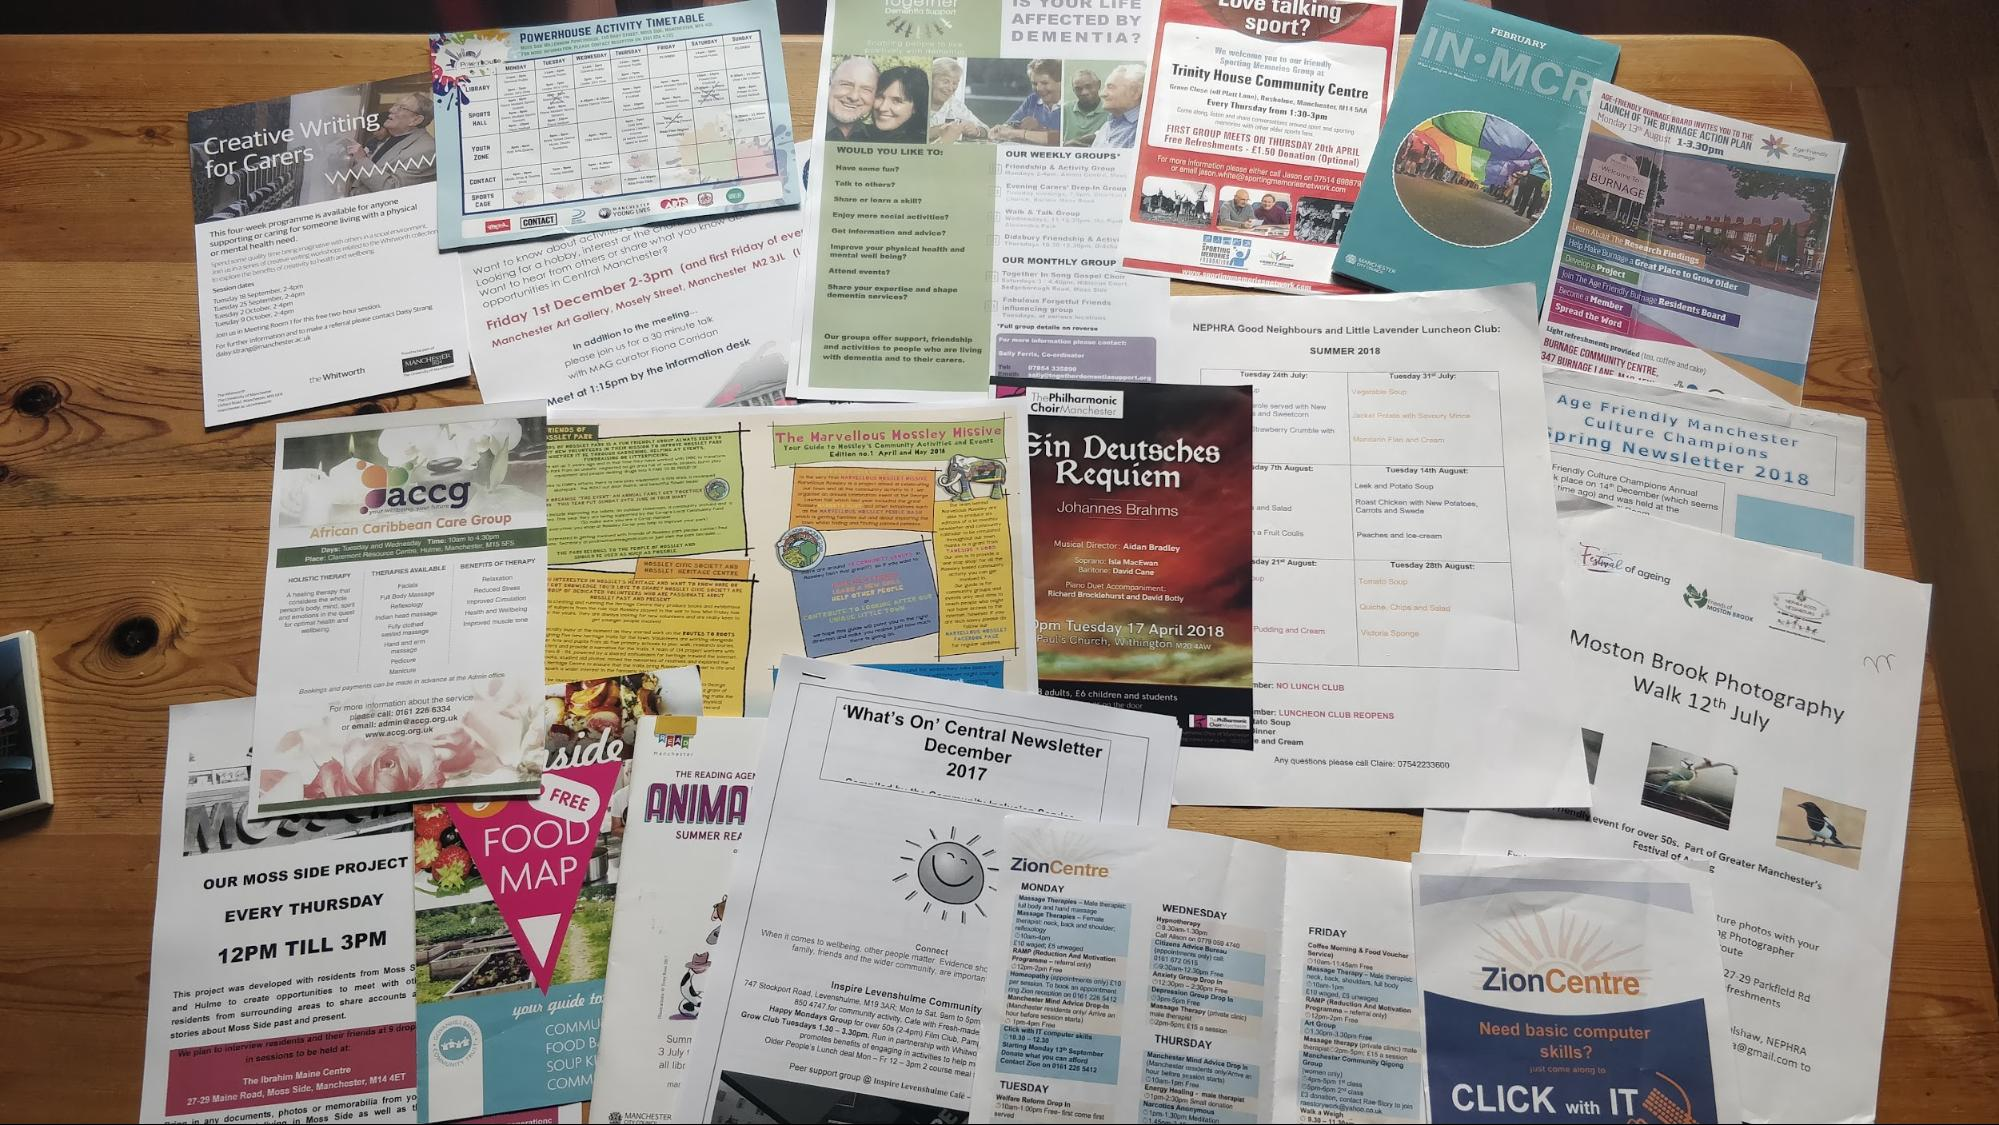 Some of the flyers and posters we collected for events in our area